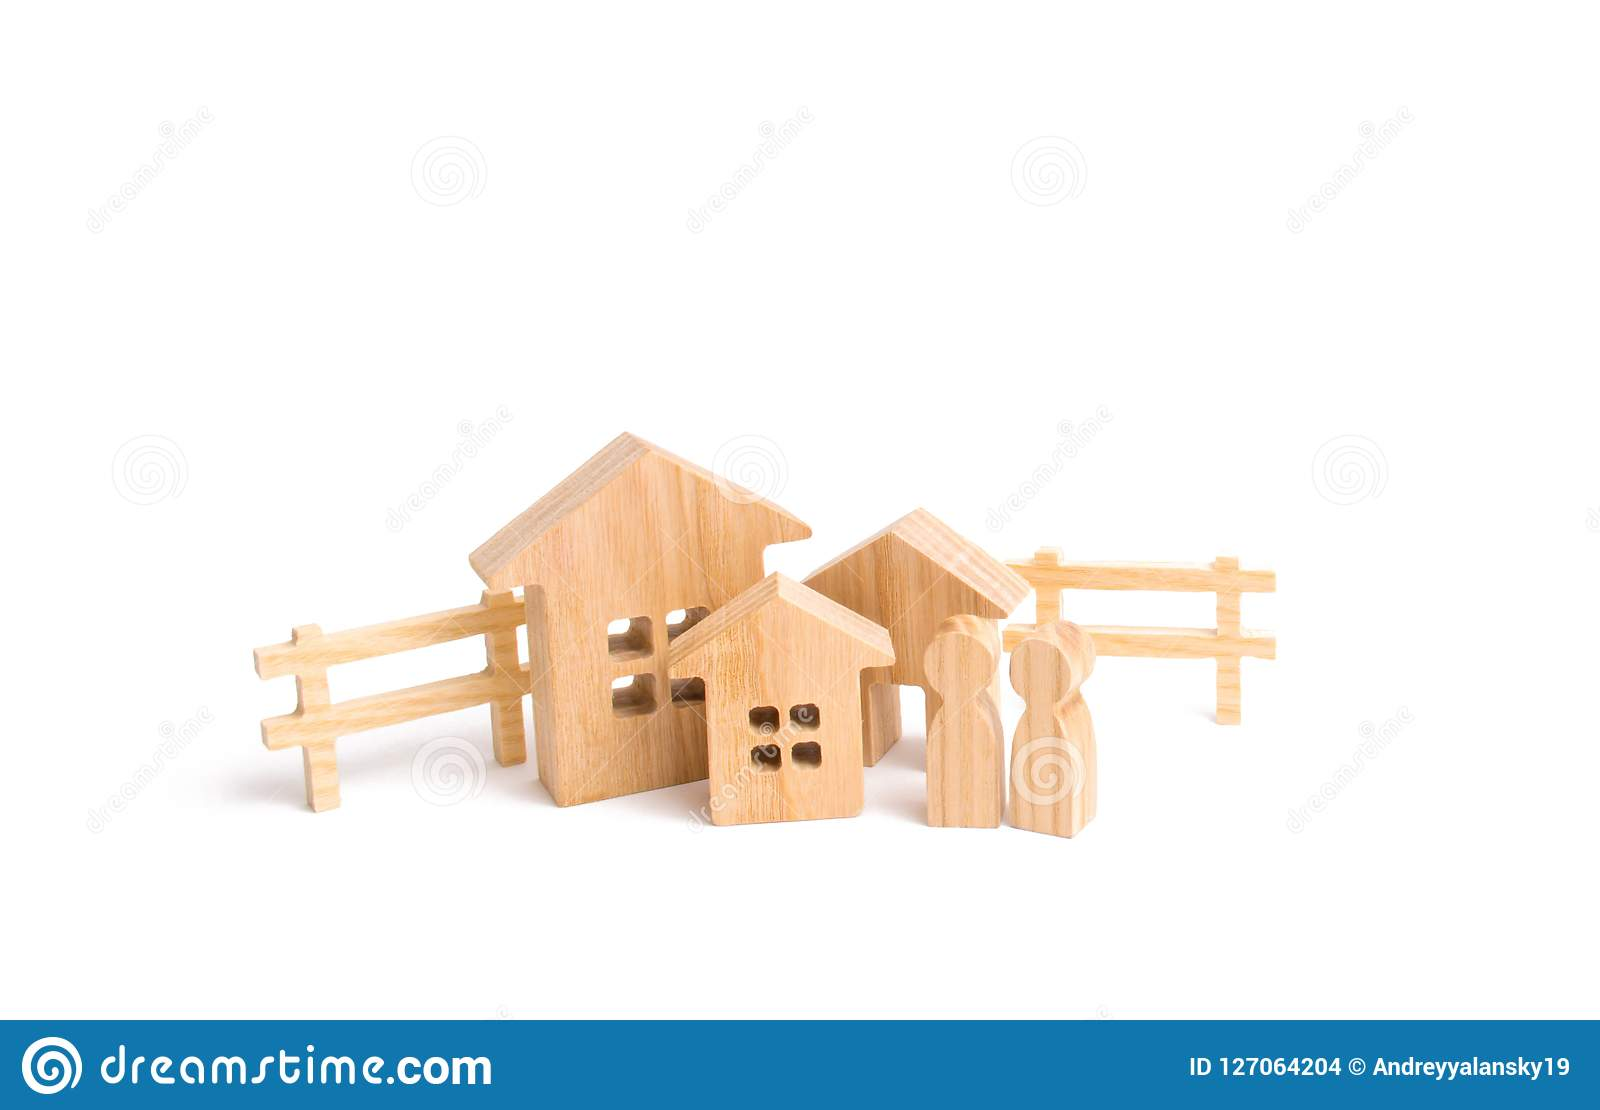 Purchase and sale of real estate, investment. Construction of farms of industrial complexes. Wooden houses and people